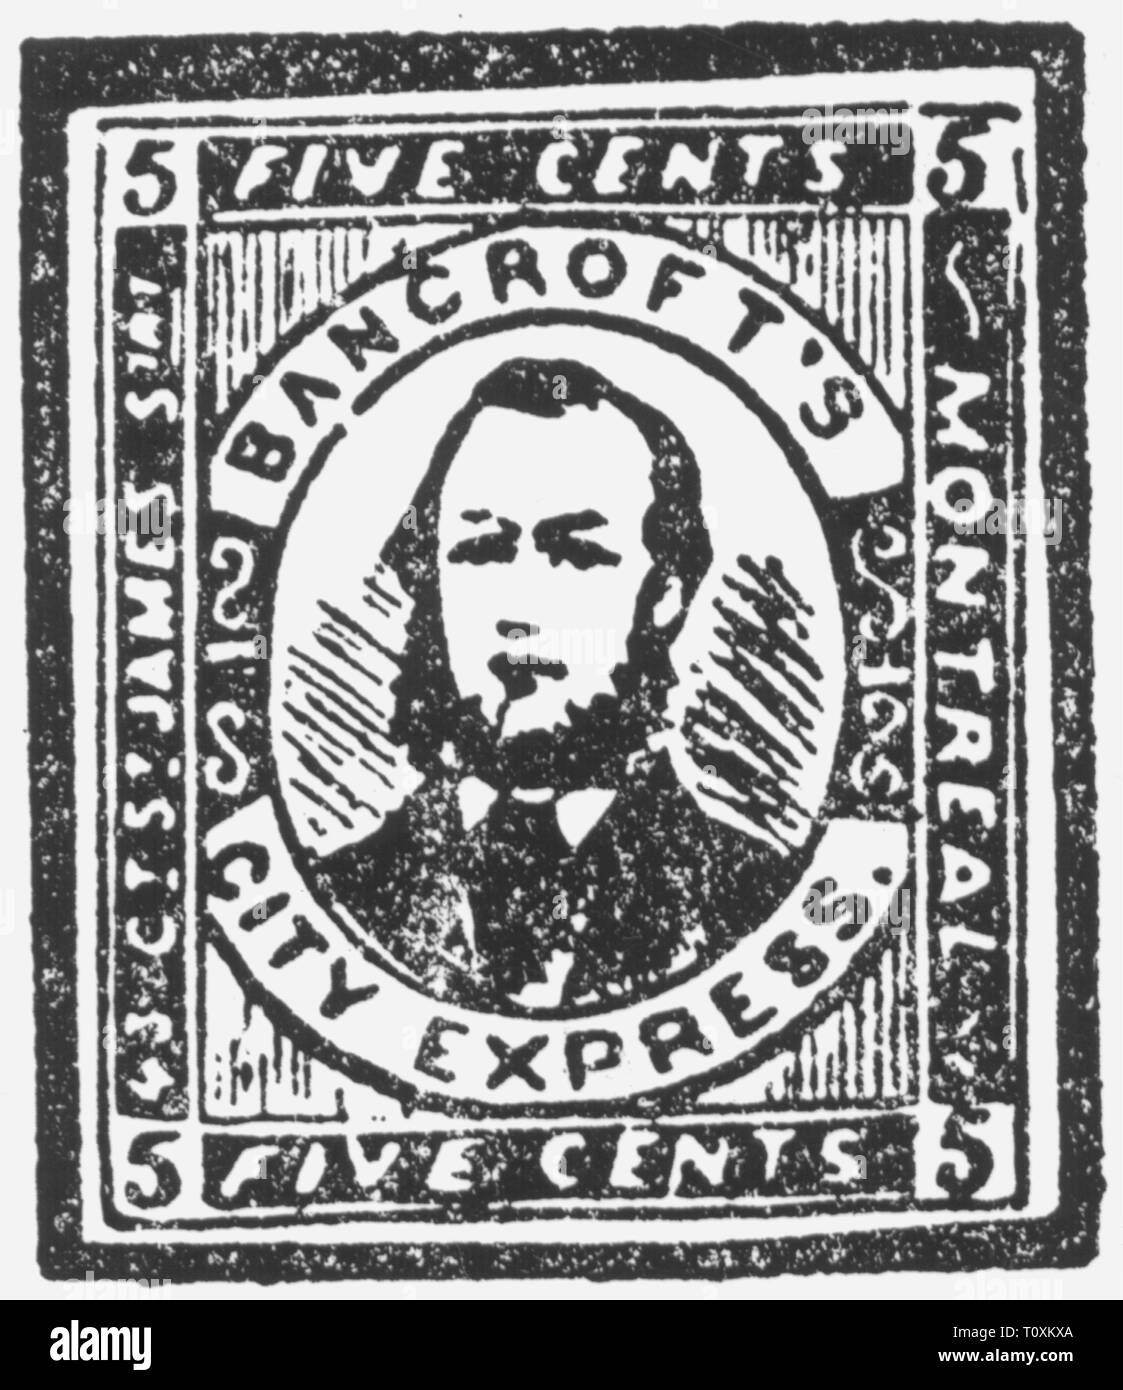 mail, postage stamps, falsification, fake 5 cent postage stamp, Bancroft's City Service, Montréal, Canada, falsification by Samuel Allan Taylor, circa 1866, Additional-Rights-Clearance-Info-Not-Available - Stock Image